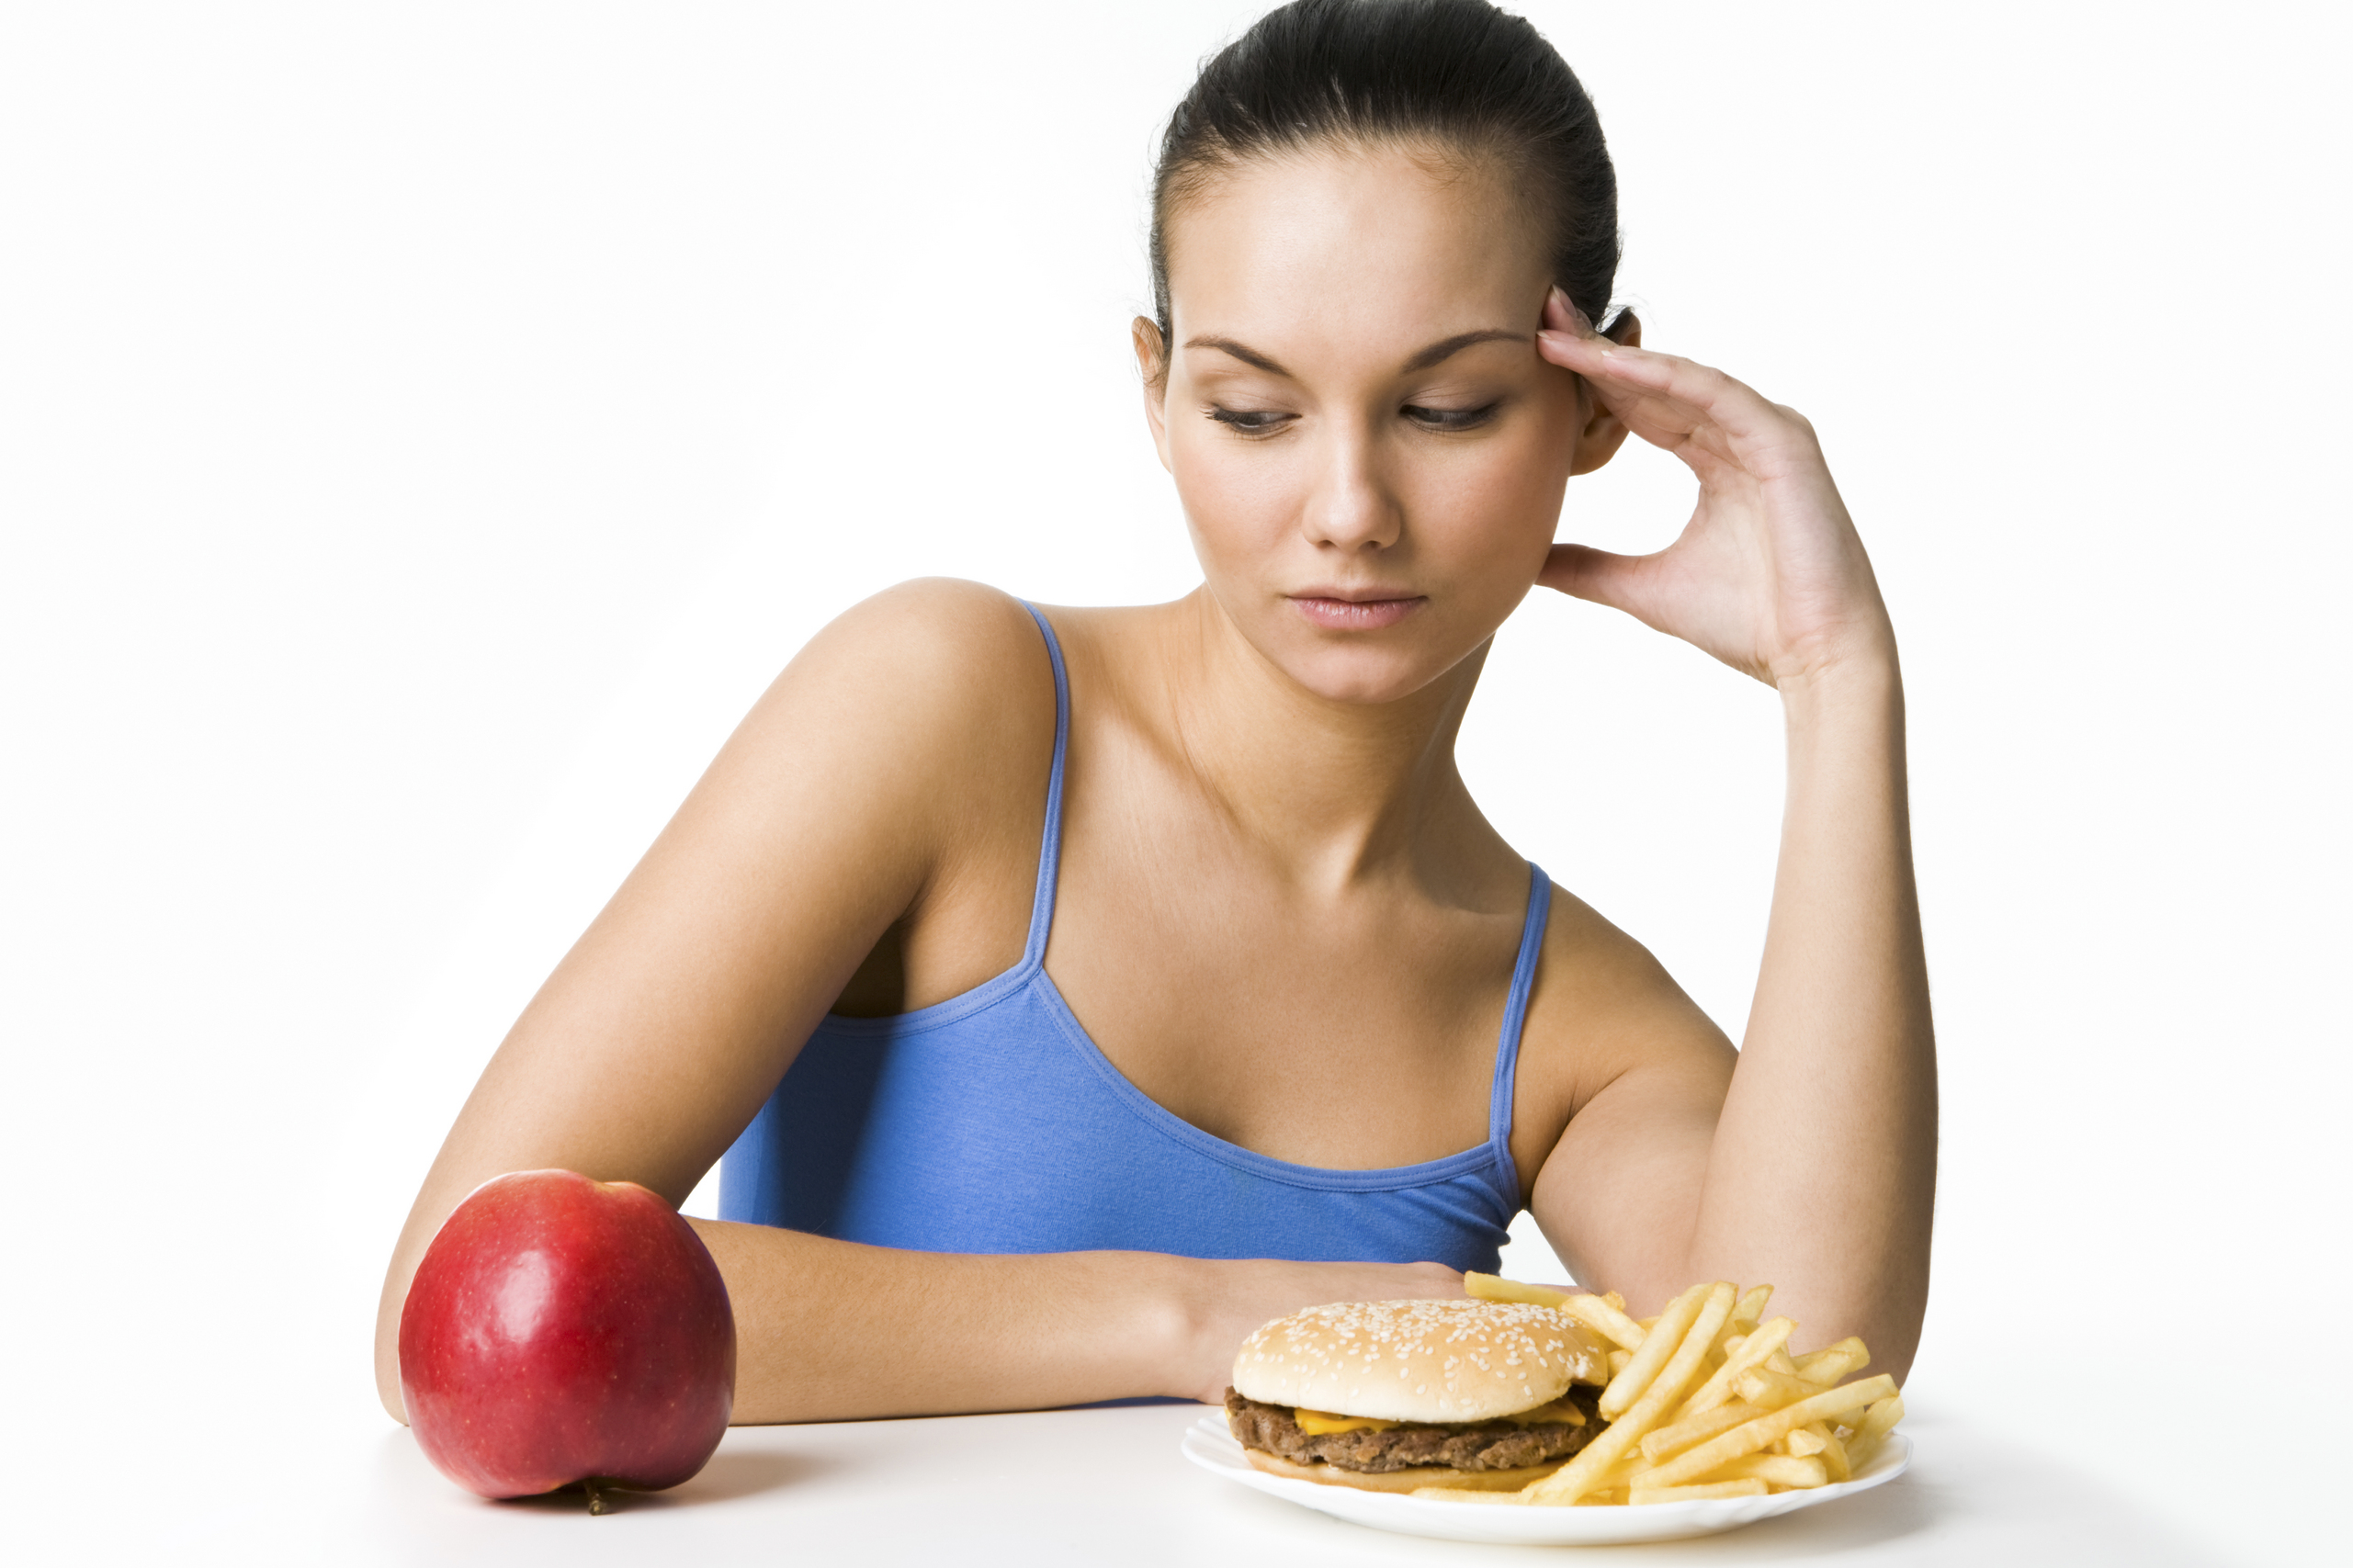 Portrait of pretty young girl deciding what to eat: an apple or hamburger with fried potatoes